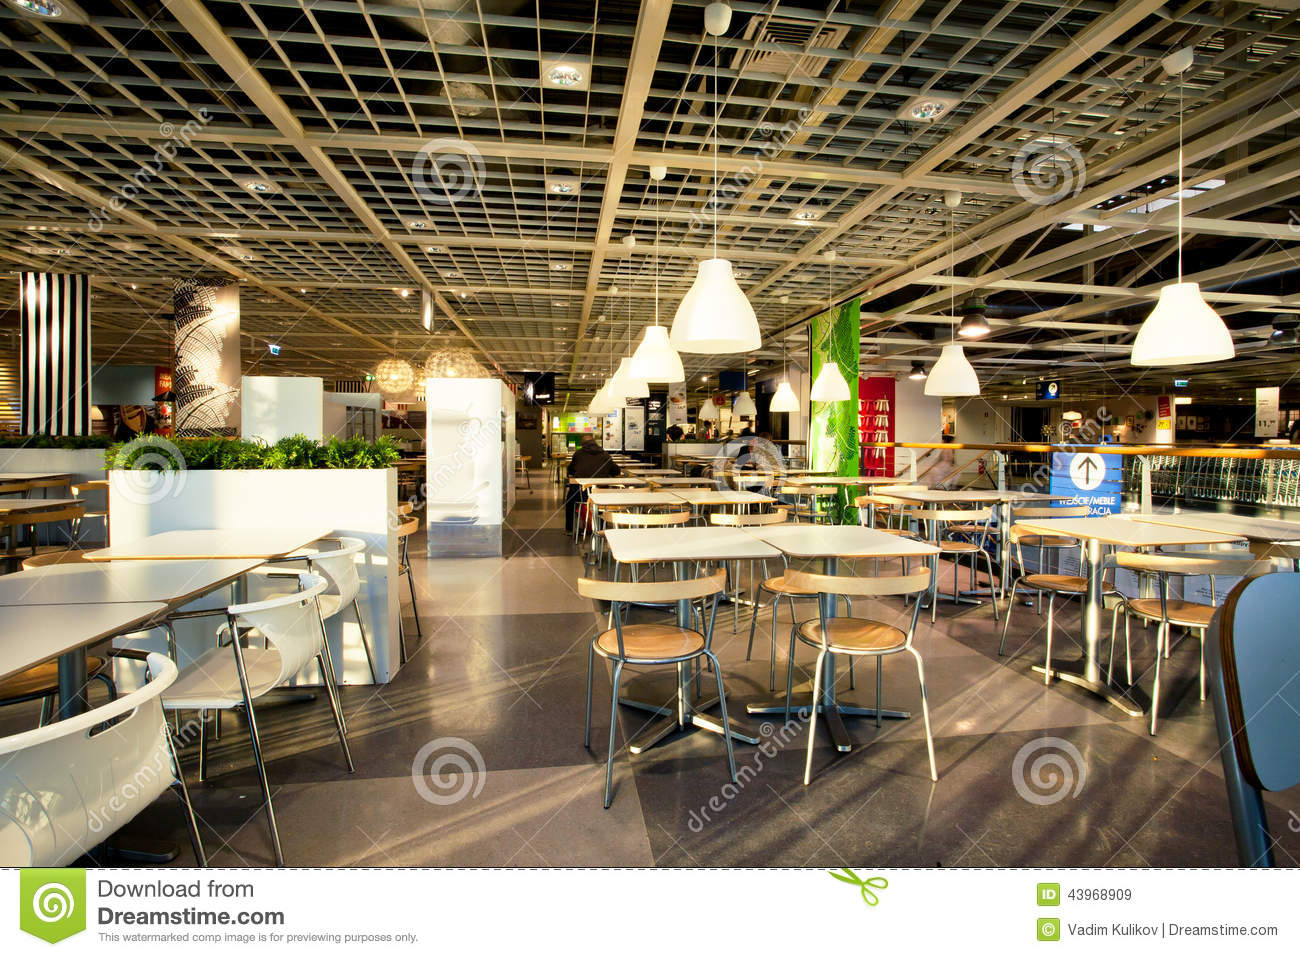 Interior Of The Dining Room In Cafe Of The Huge IKEA Store  : interior dining room cafe huge ikea store katowice poland international katowice lies urban zone 43968909 from www.dreamstime.com size 1300 x 957 jpeg 271kB